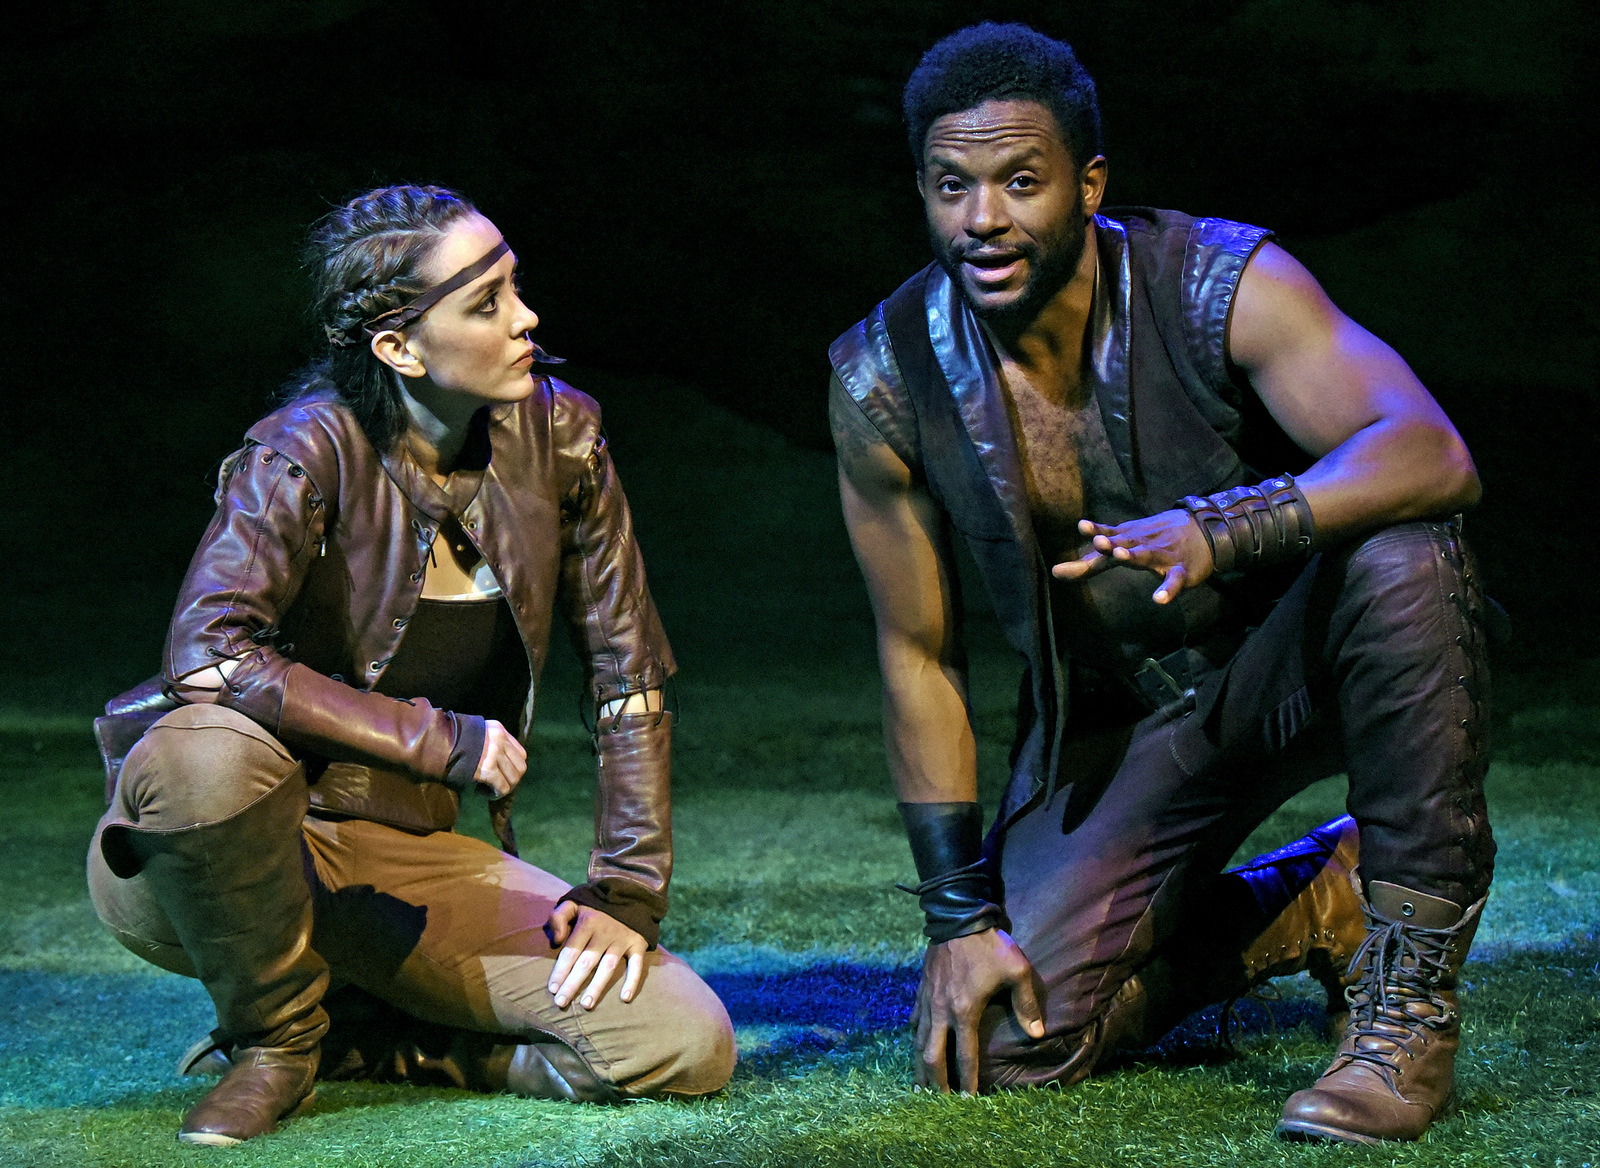 Vesturport and The Wallis' The Heart of Robin Hood. Pictured (l-r): Christina Bennett Lind and Luke Forbes. Photo credit: Kevin Parry for The Wallis.